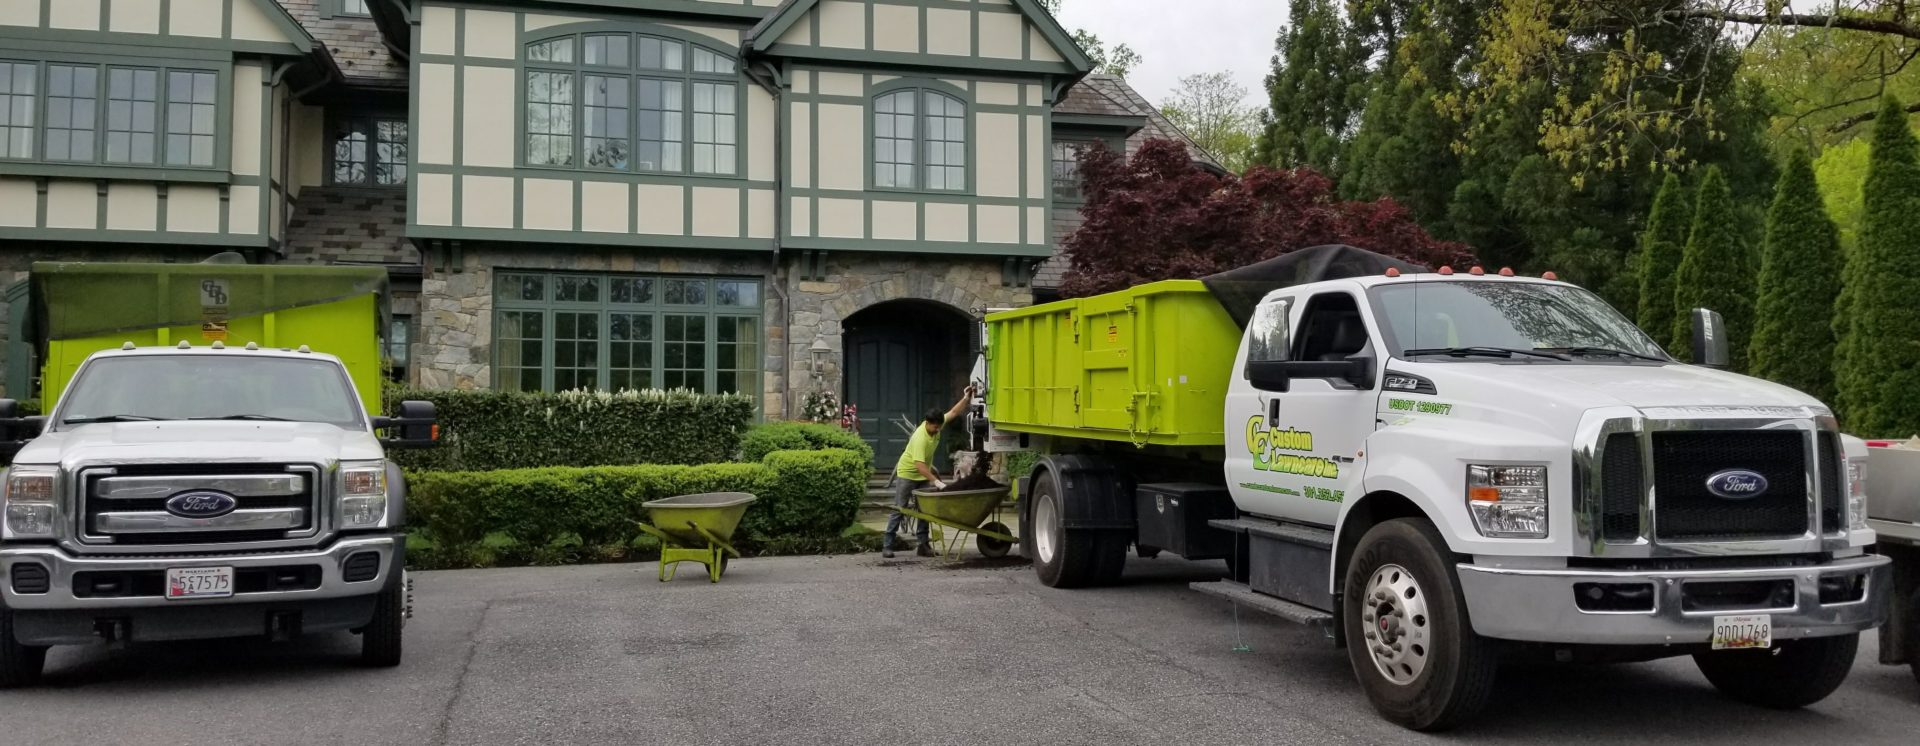 Landscape Design & Maintenance Services